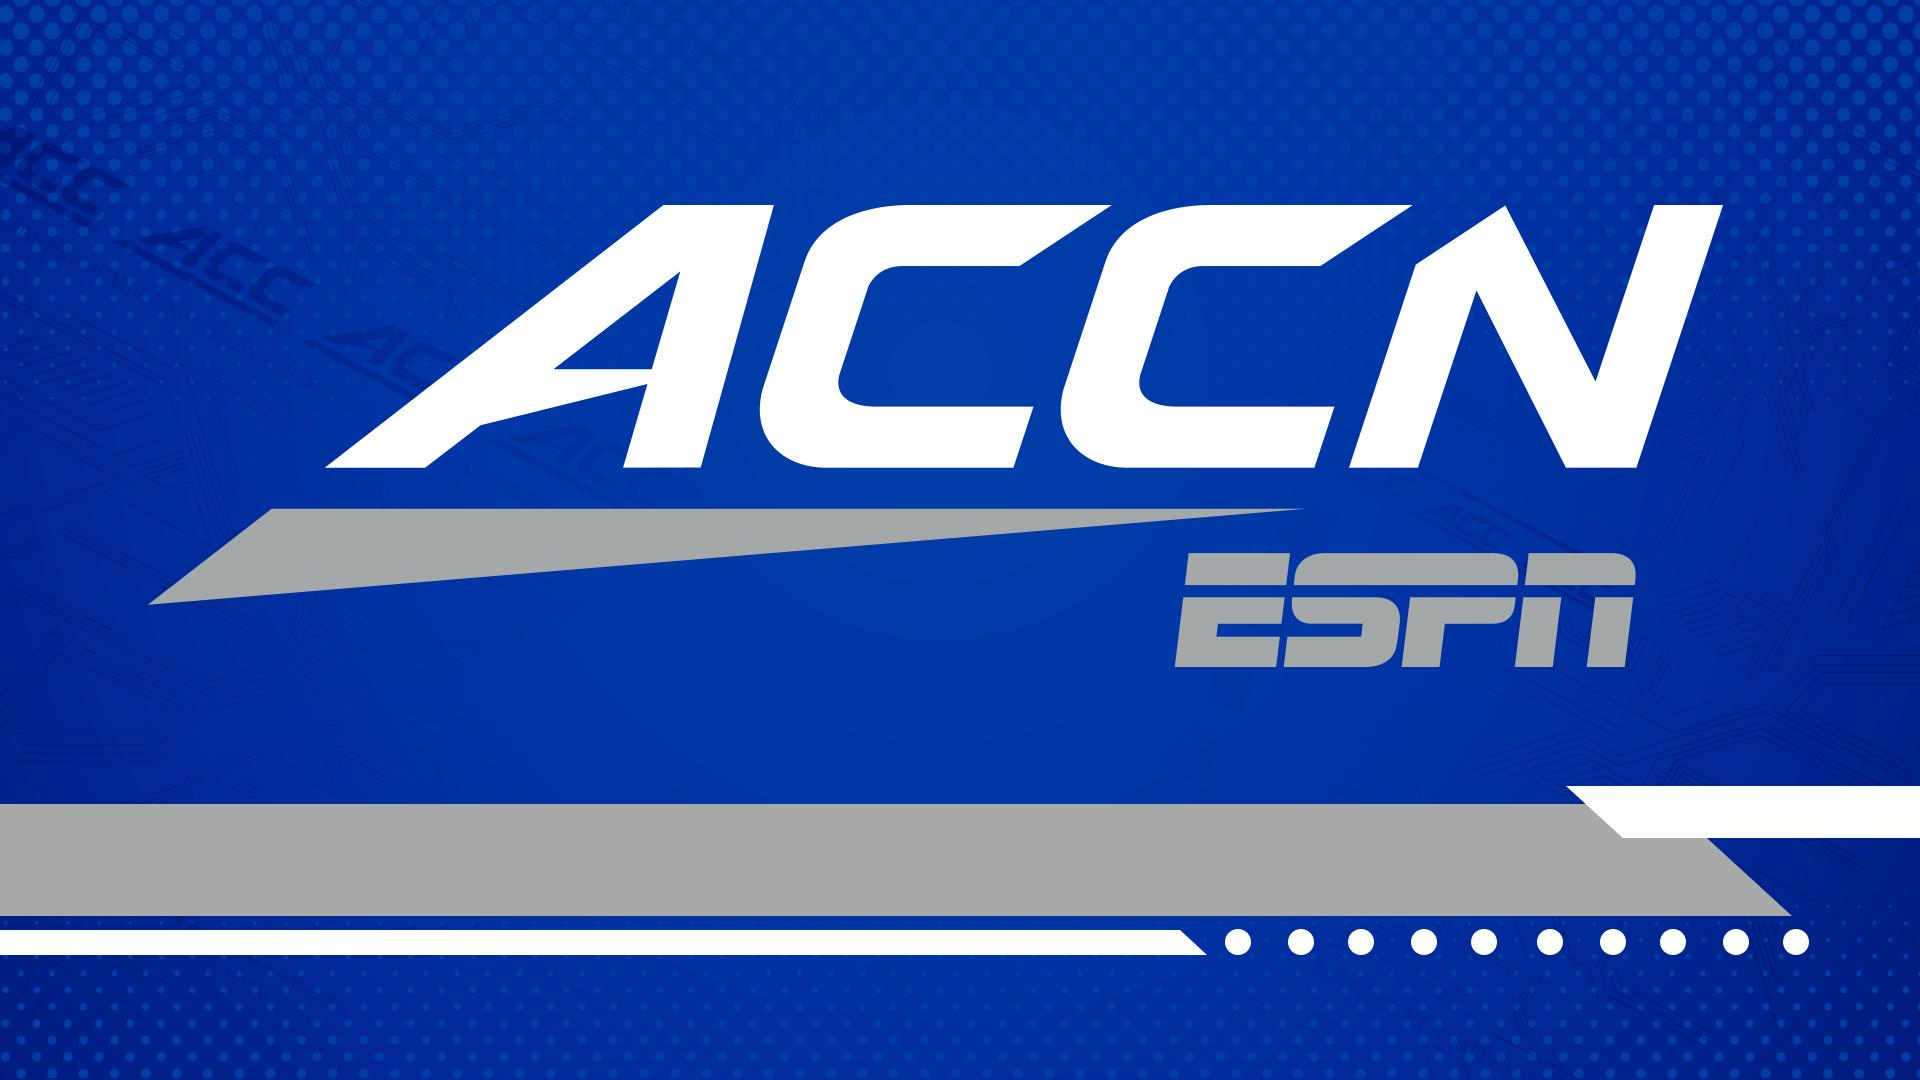 does xfinity carry the acc network